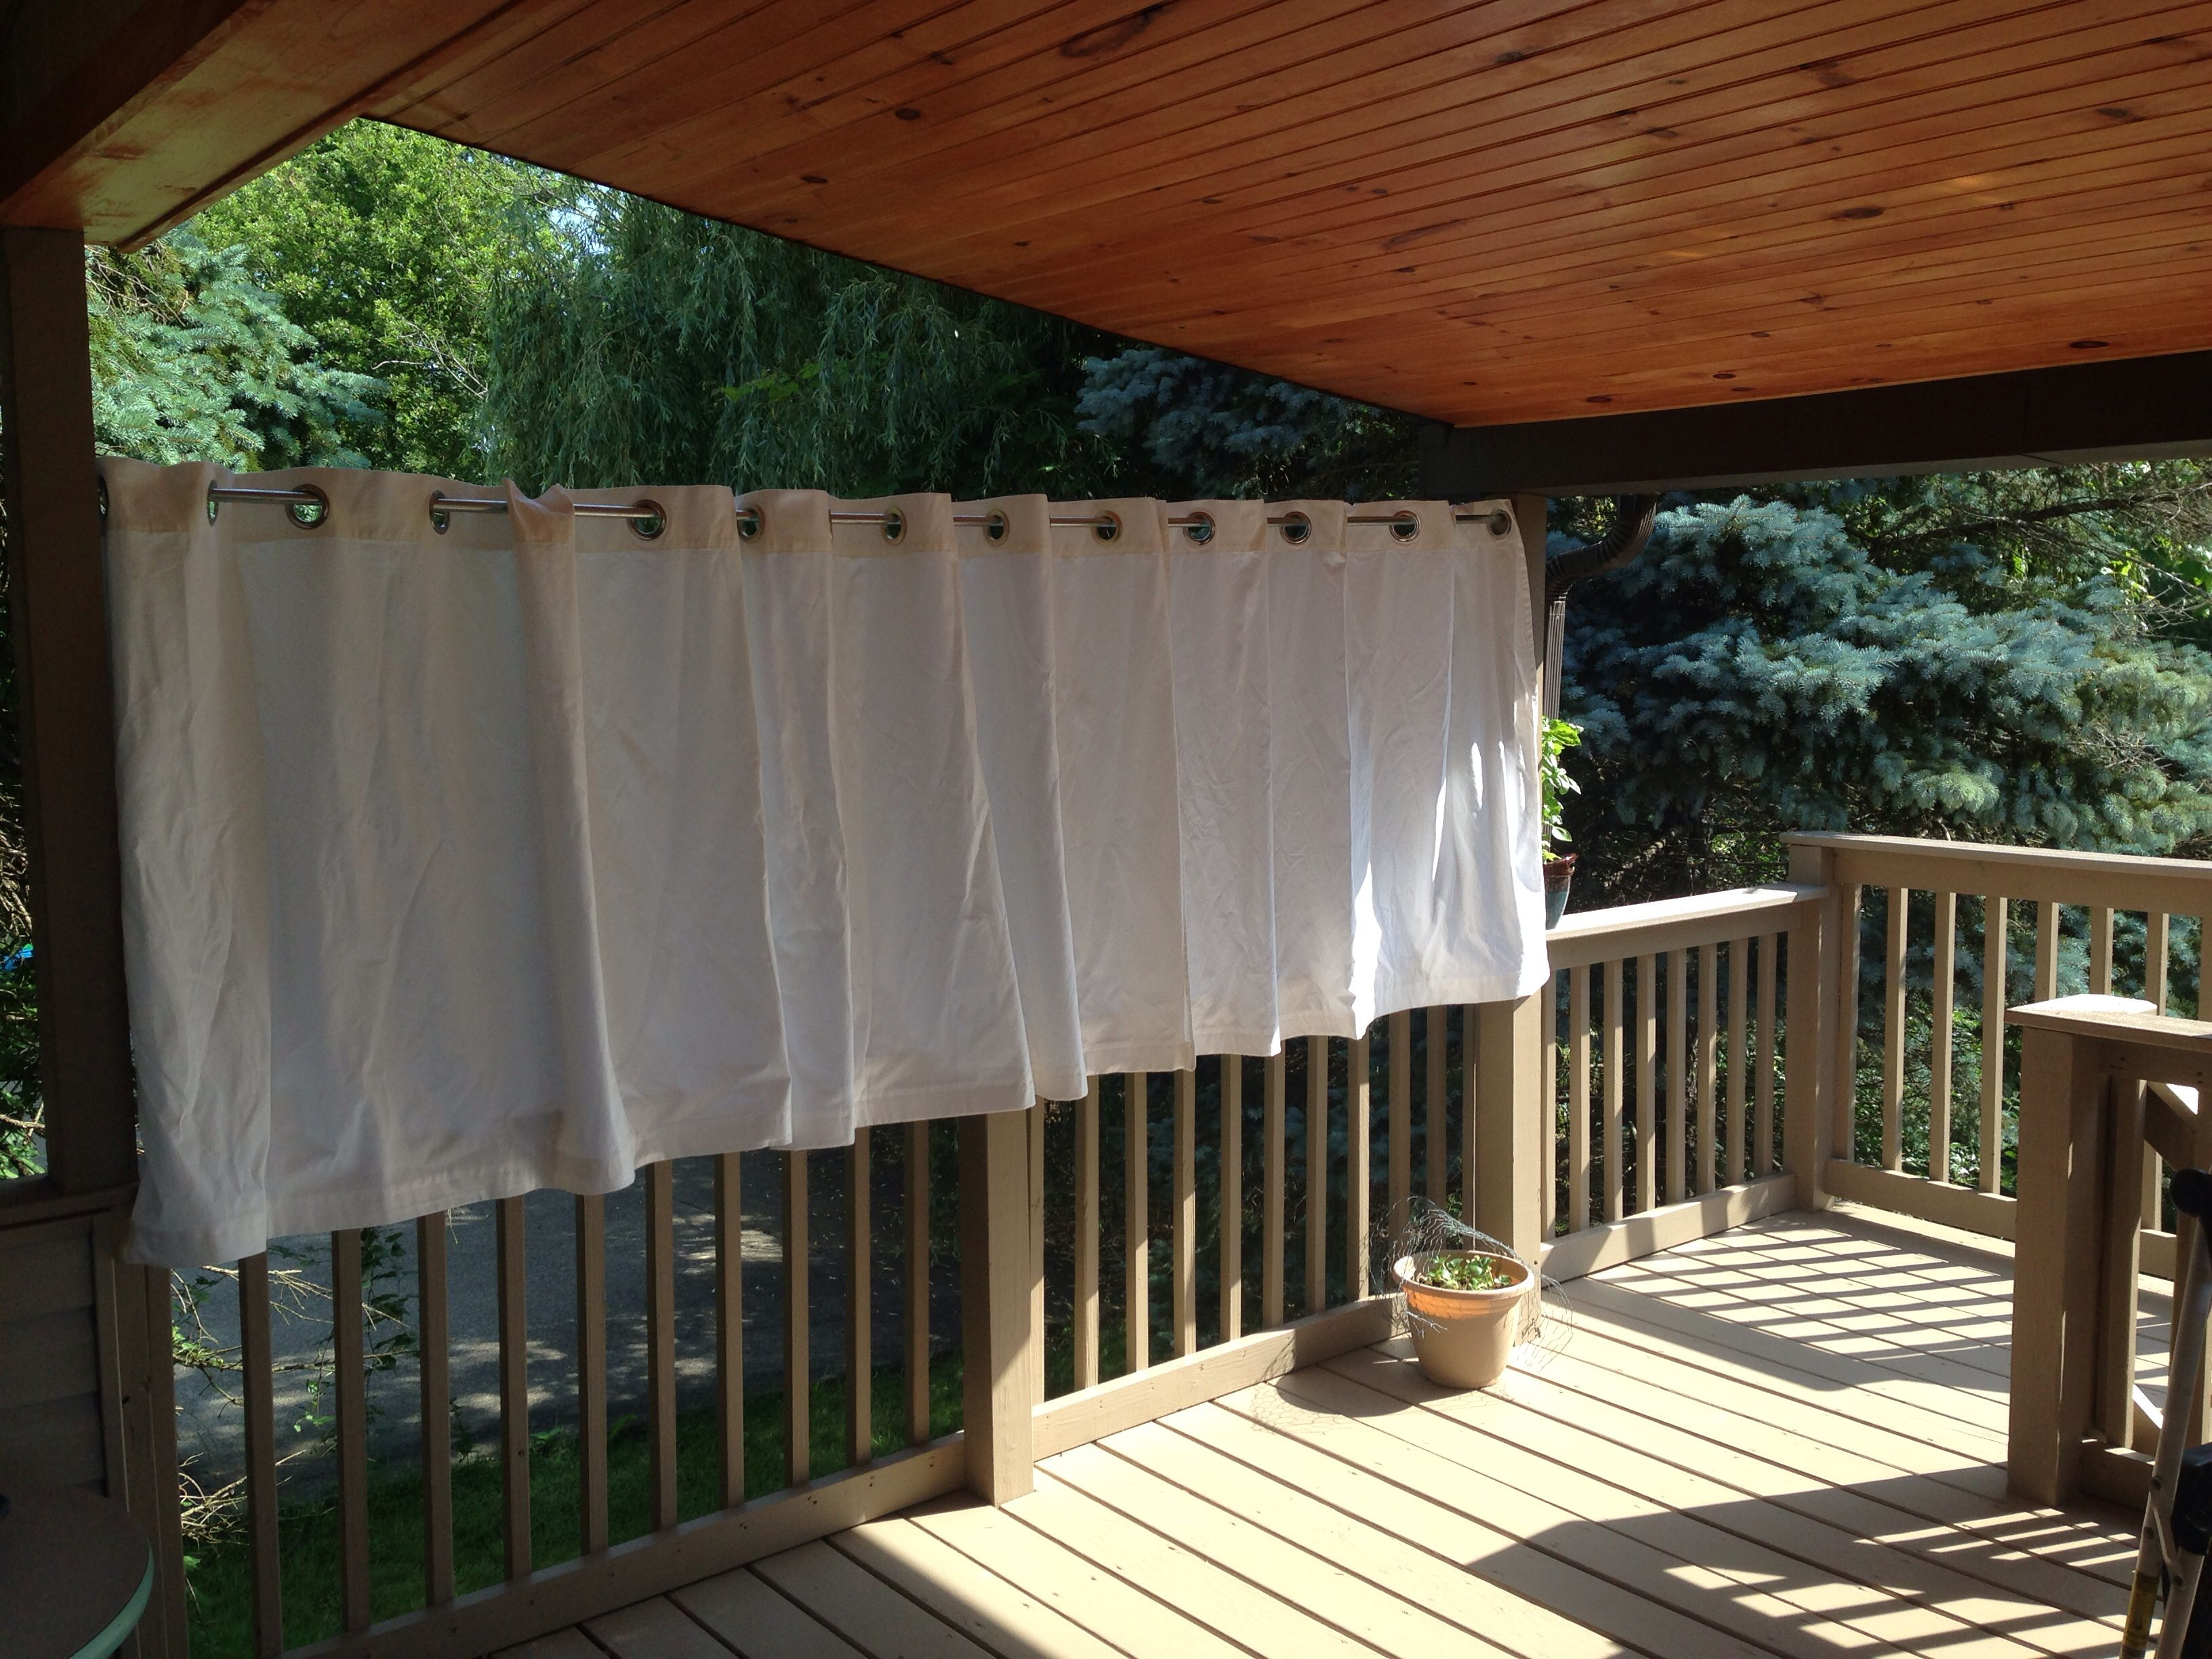 Outdoor deck privacy curtain grommet curtains from ikea for Outdoor curtains for patio ikea